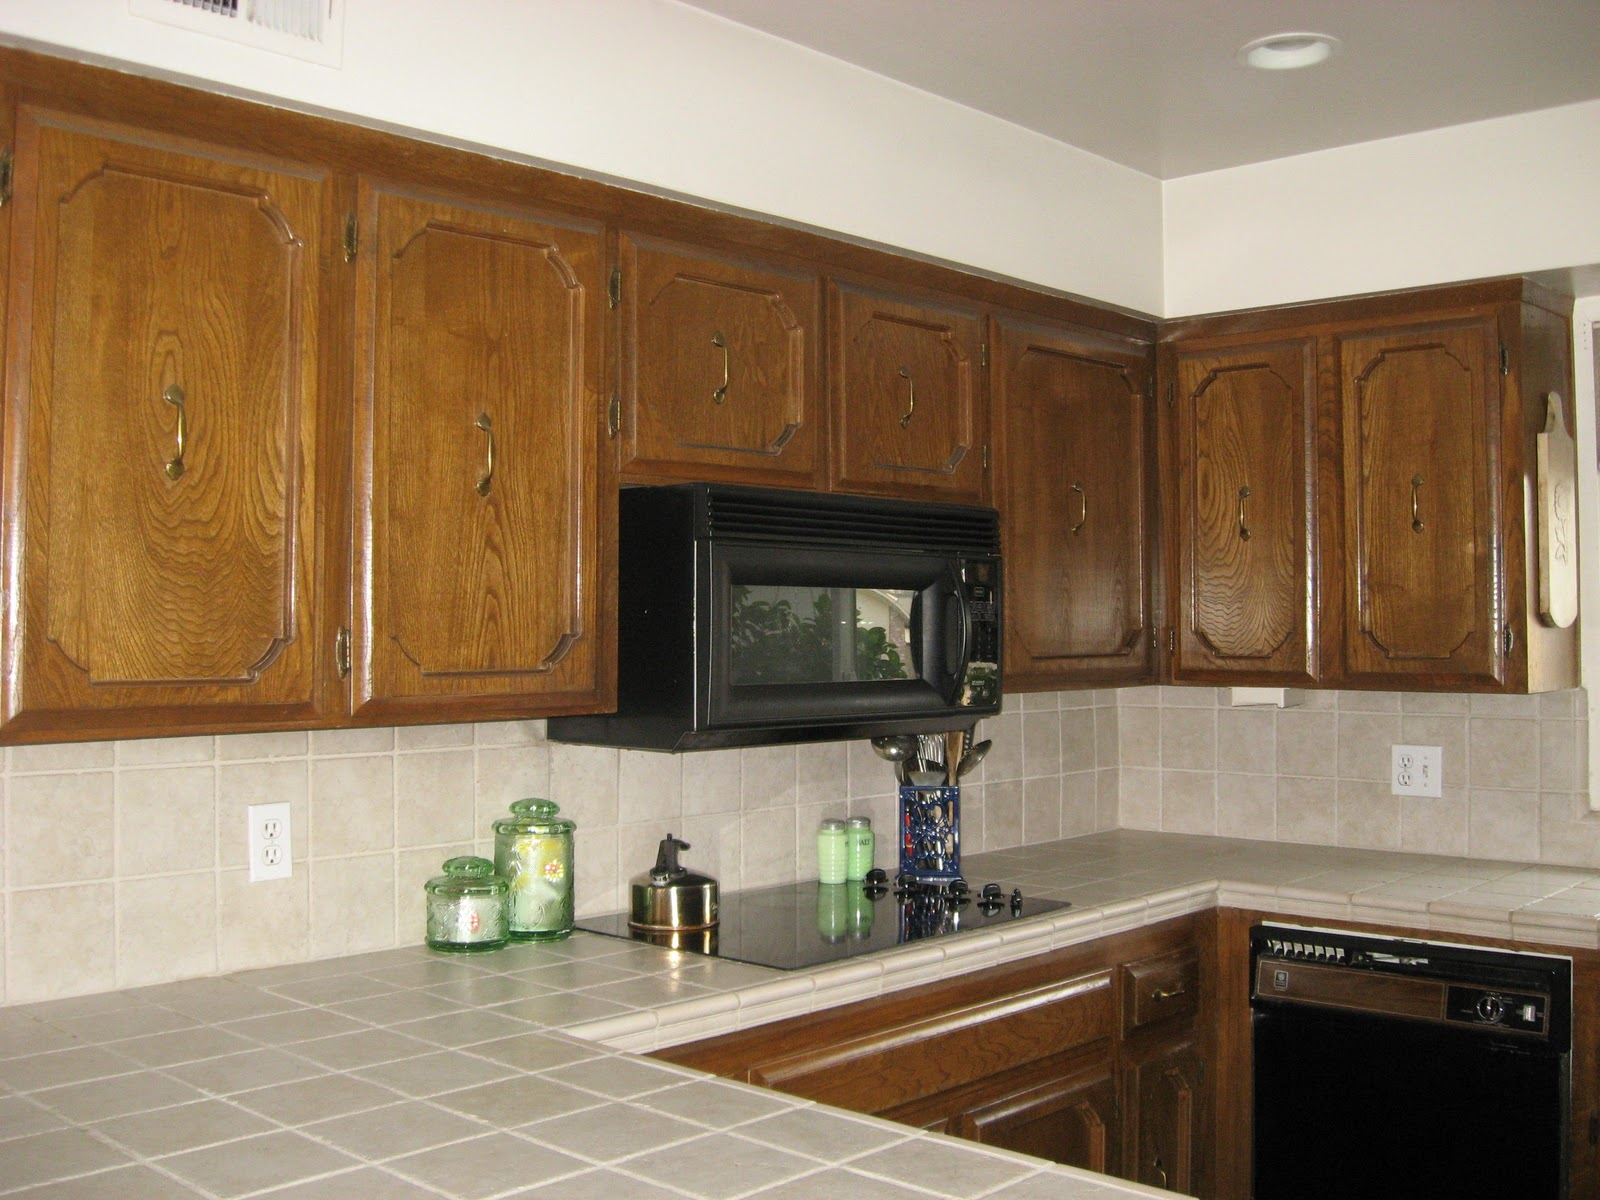 Kitchen Cabinets and Tile